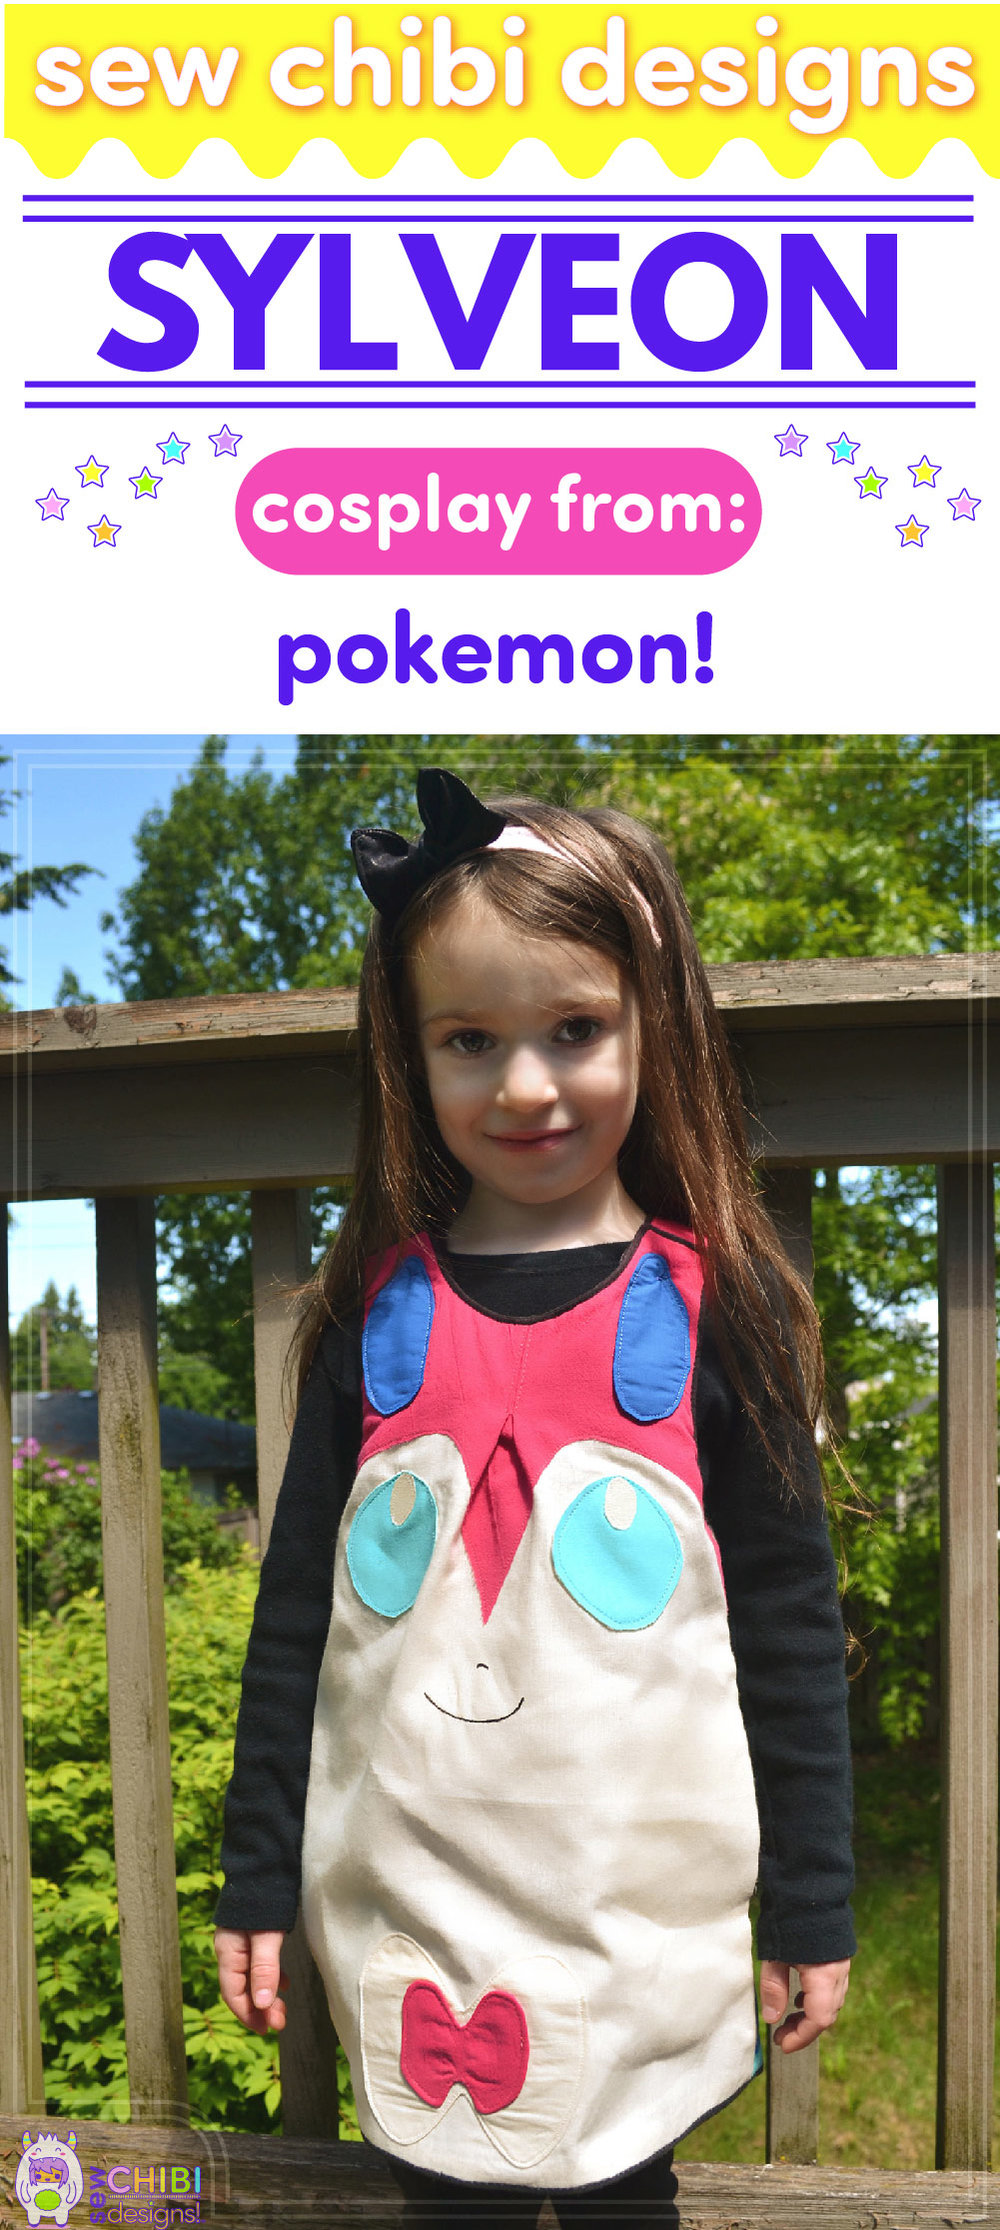 Sylveon chibi cosplay from Pokemon sewn by Sew Chibi Designs for Sew Geeky